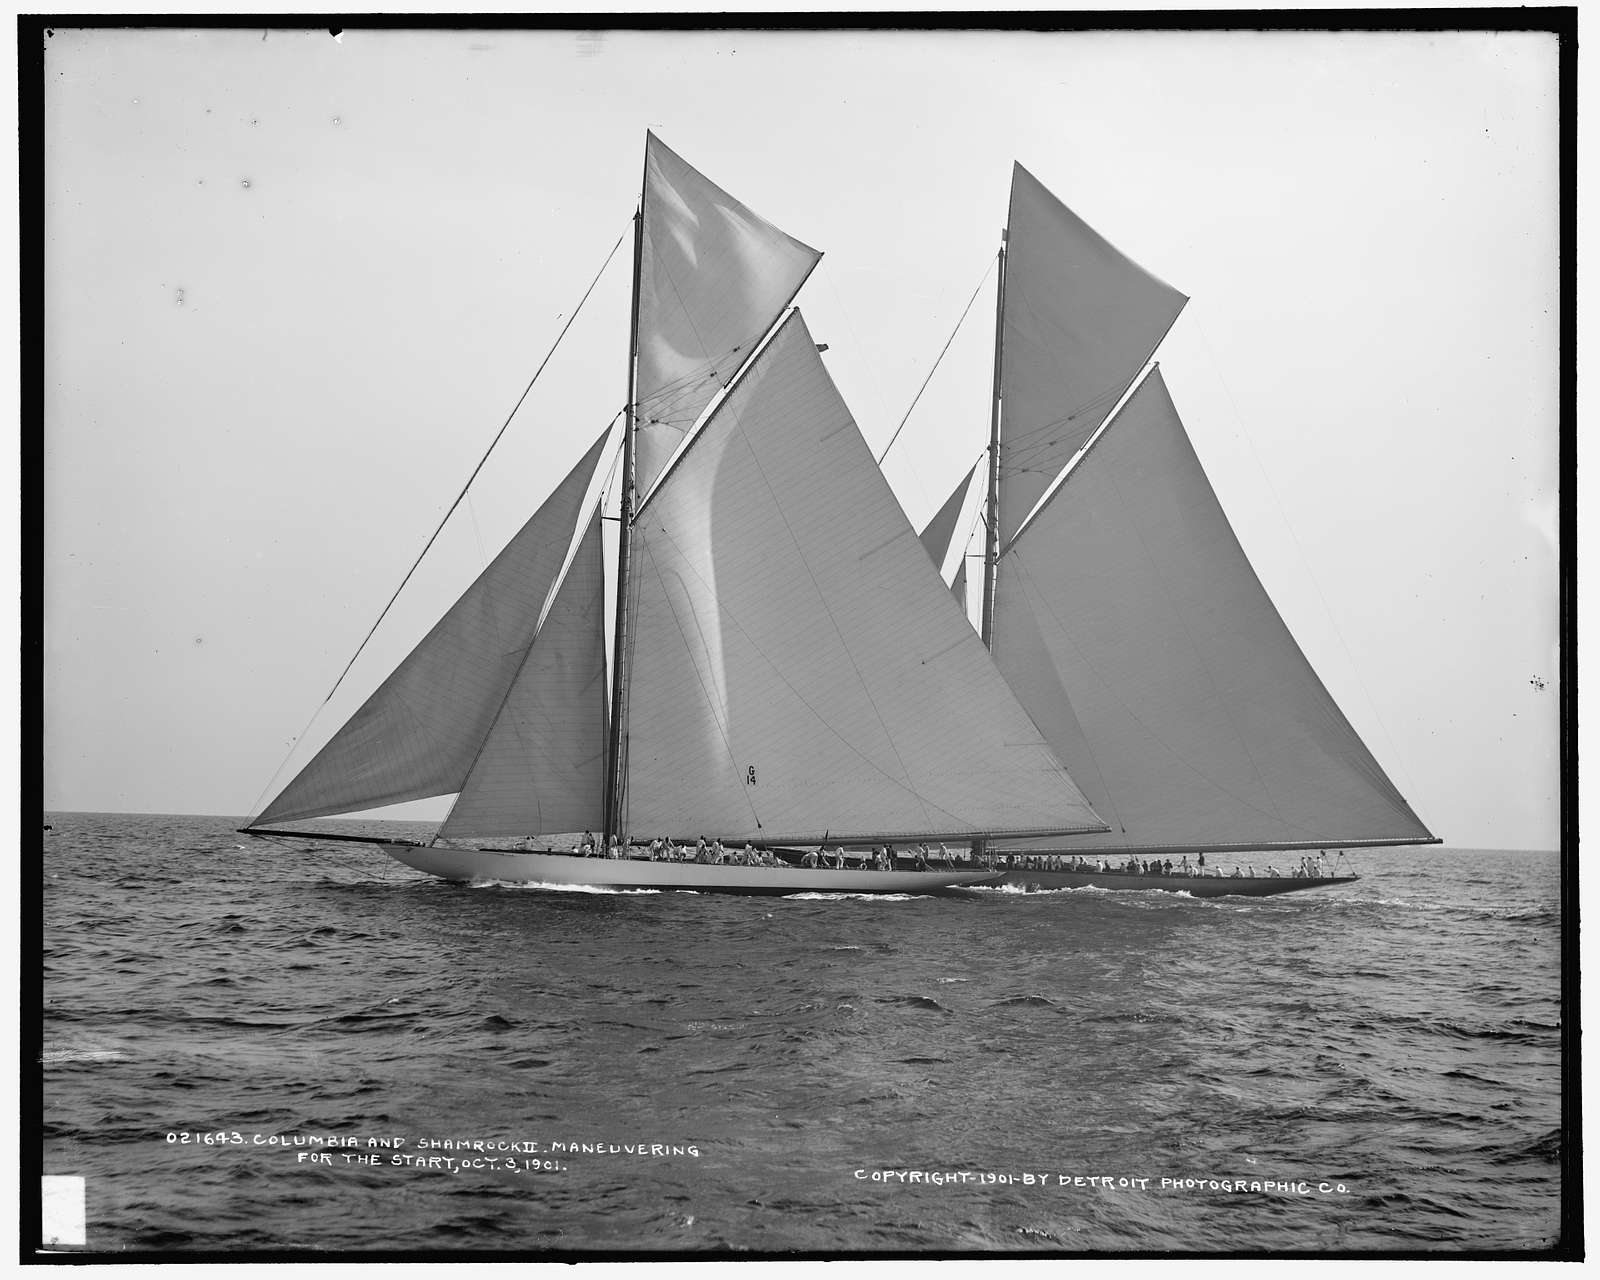 Columbia and Shamrock II maneuvering for the start, Oct. 3, 1901